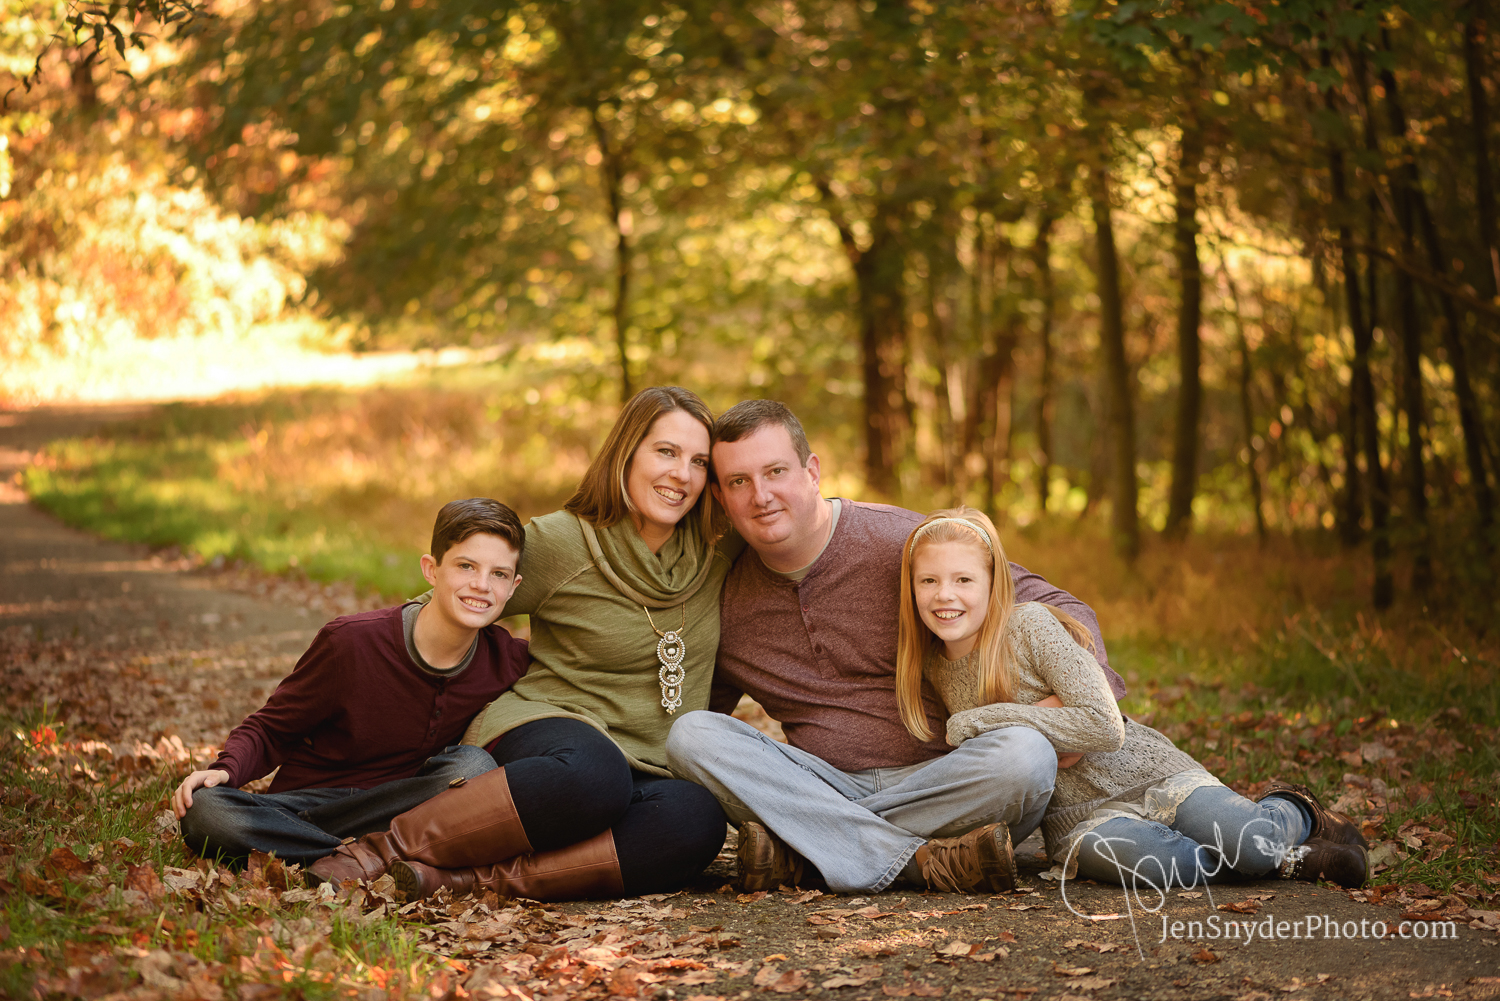 Bel Air MD family portrait photography by Jen Snyder http://www.jensnyderphoto.com